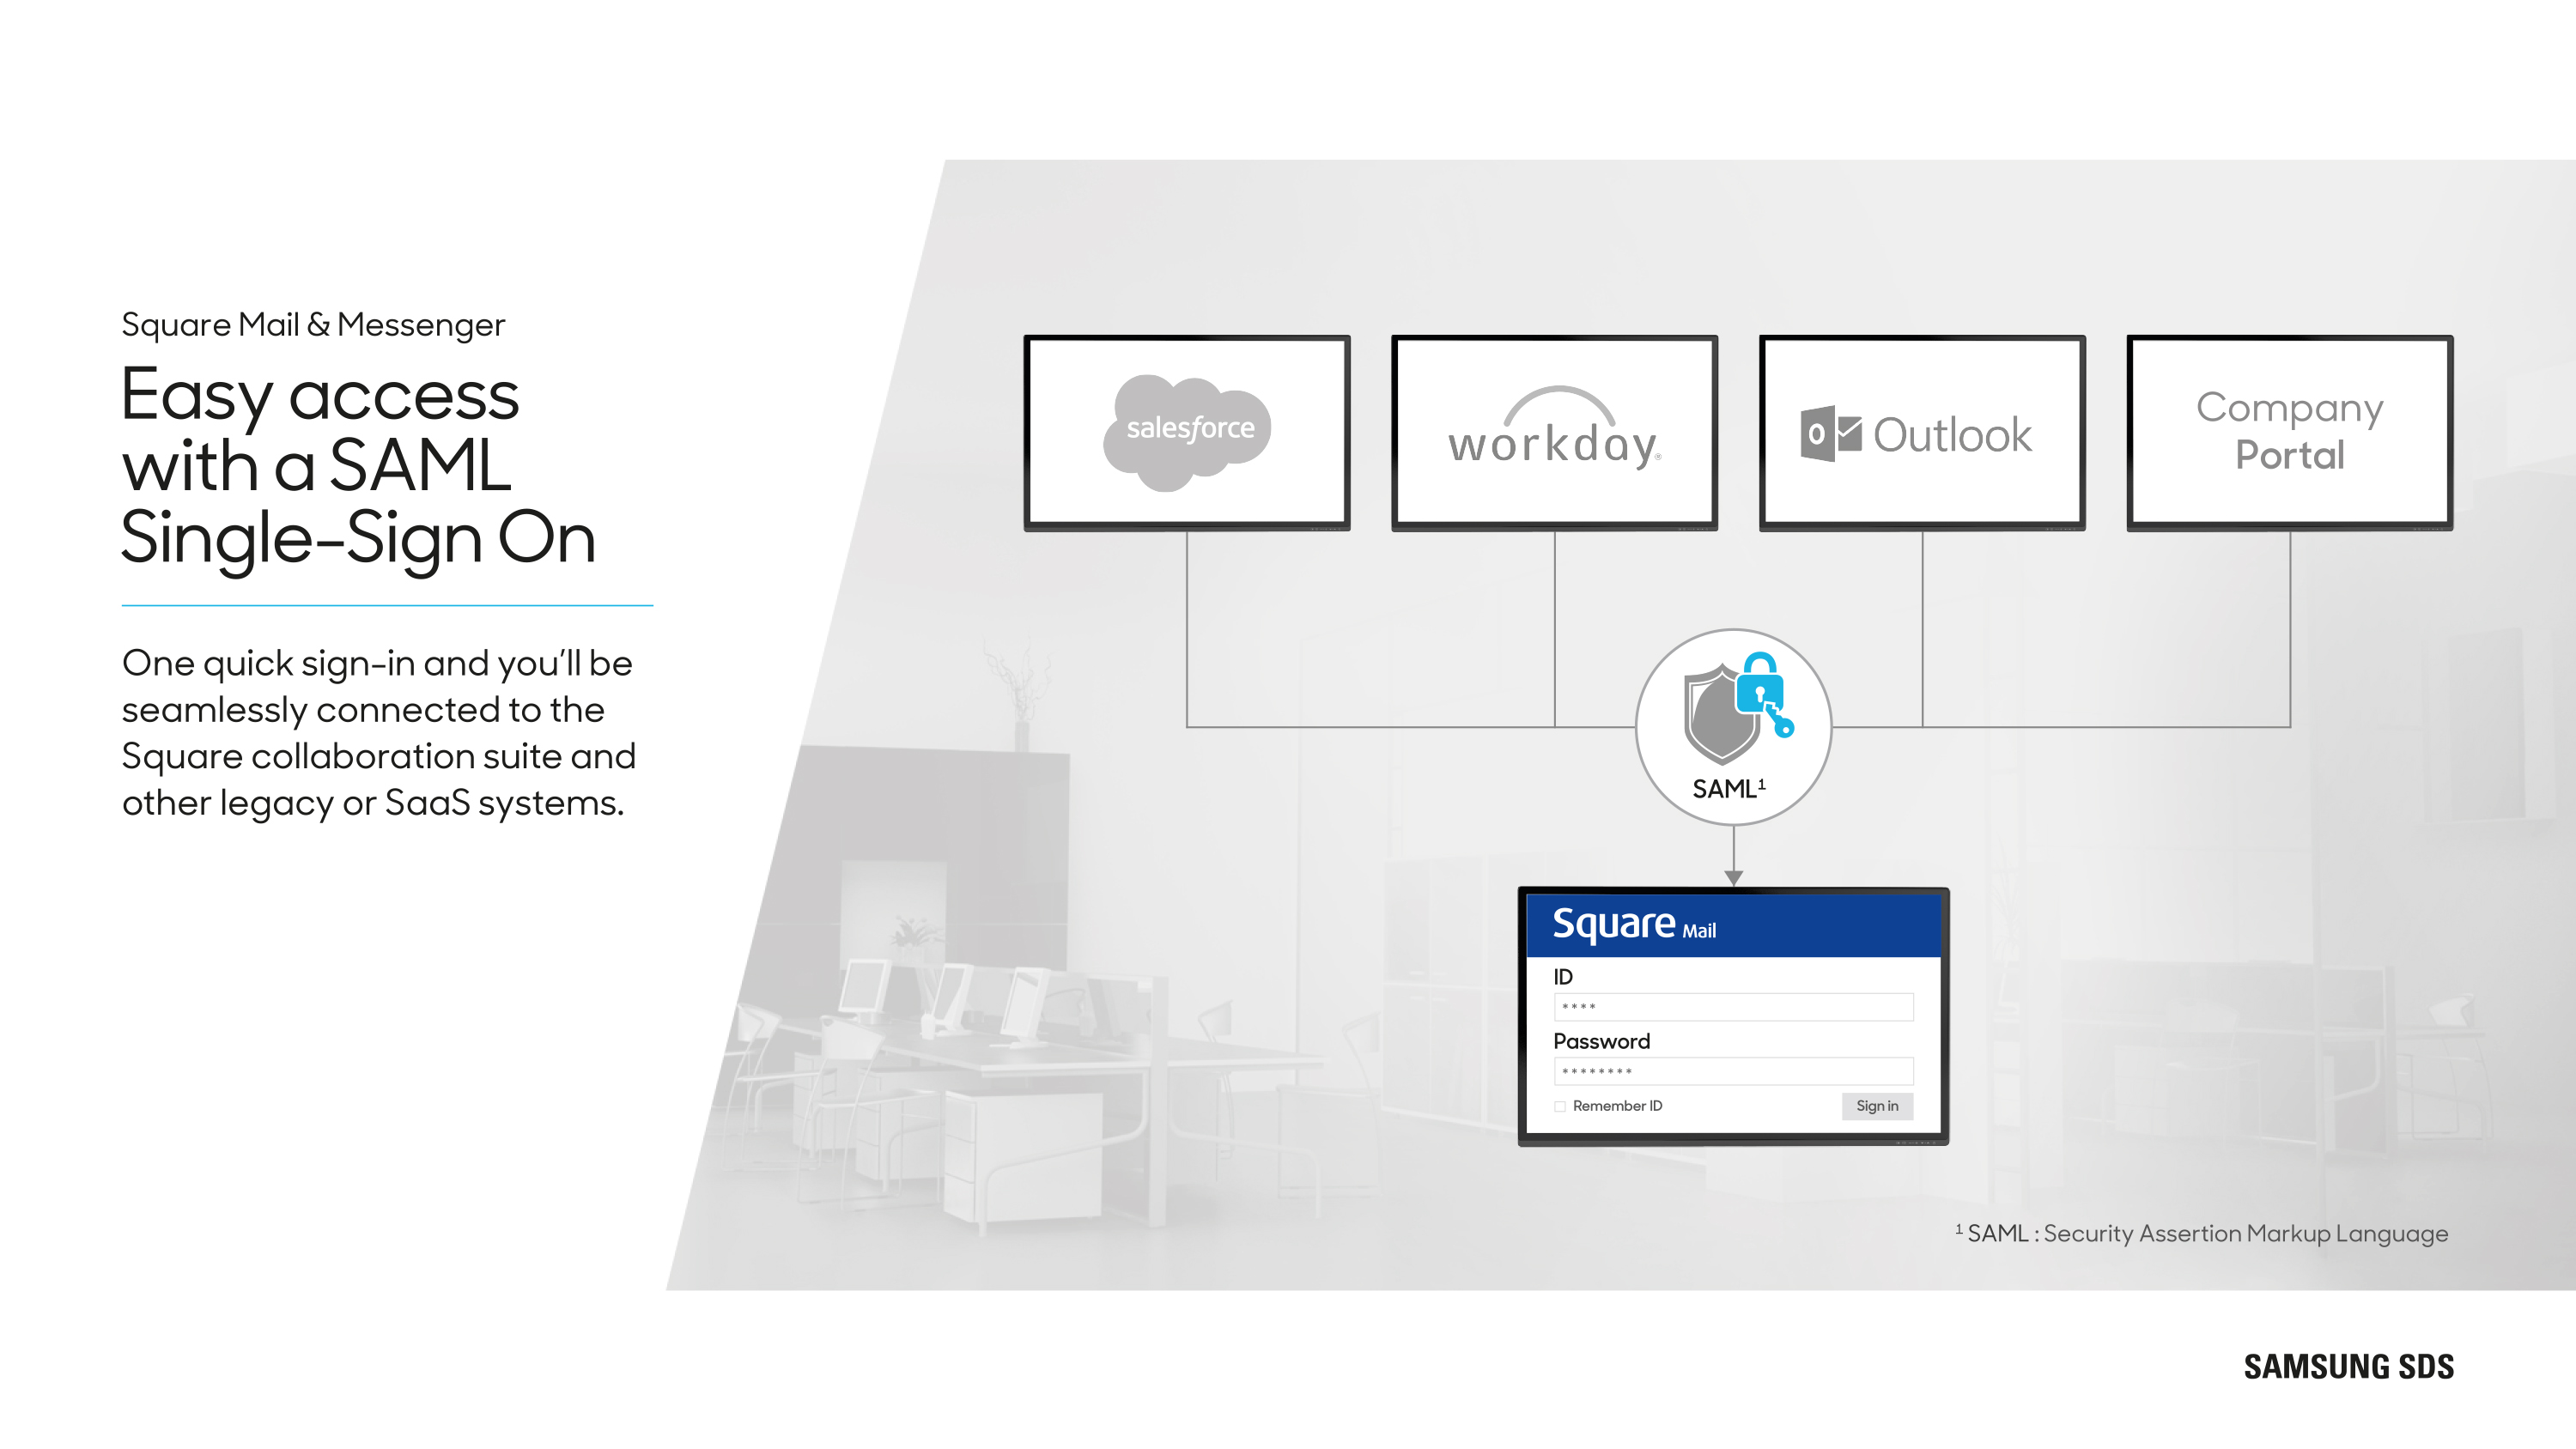 Easy access with a SAML Single-Sign On